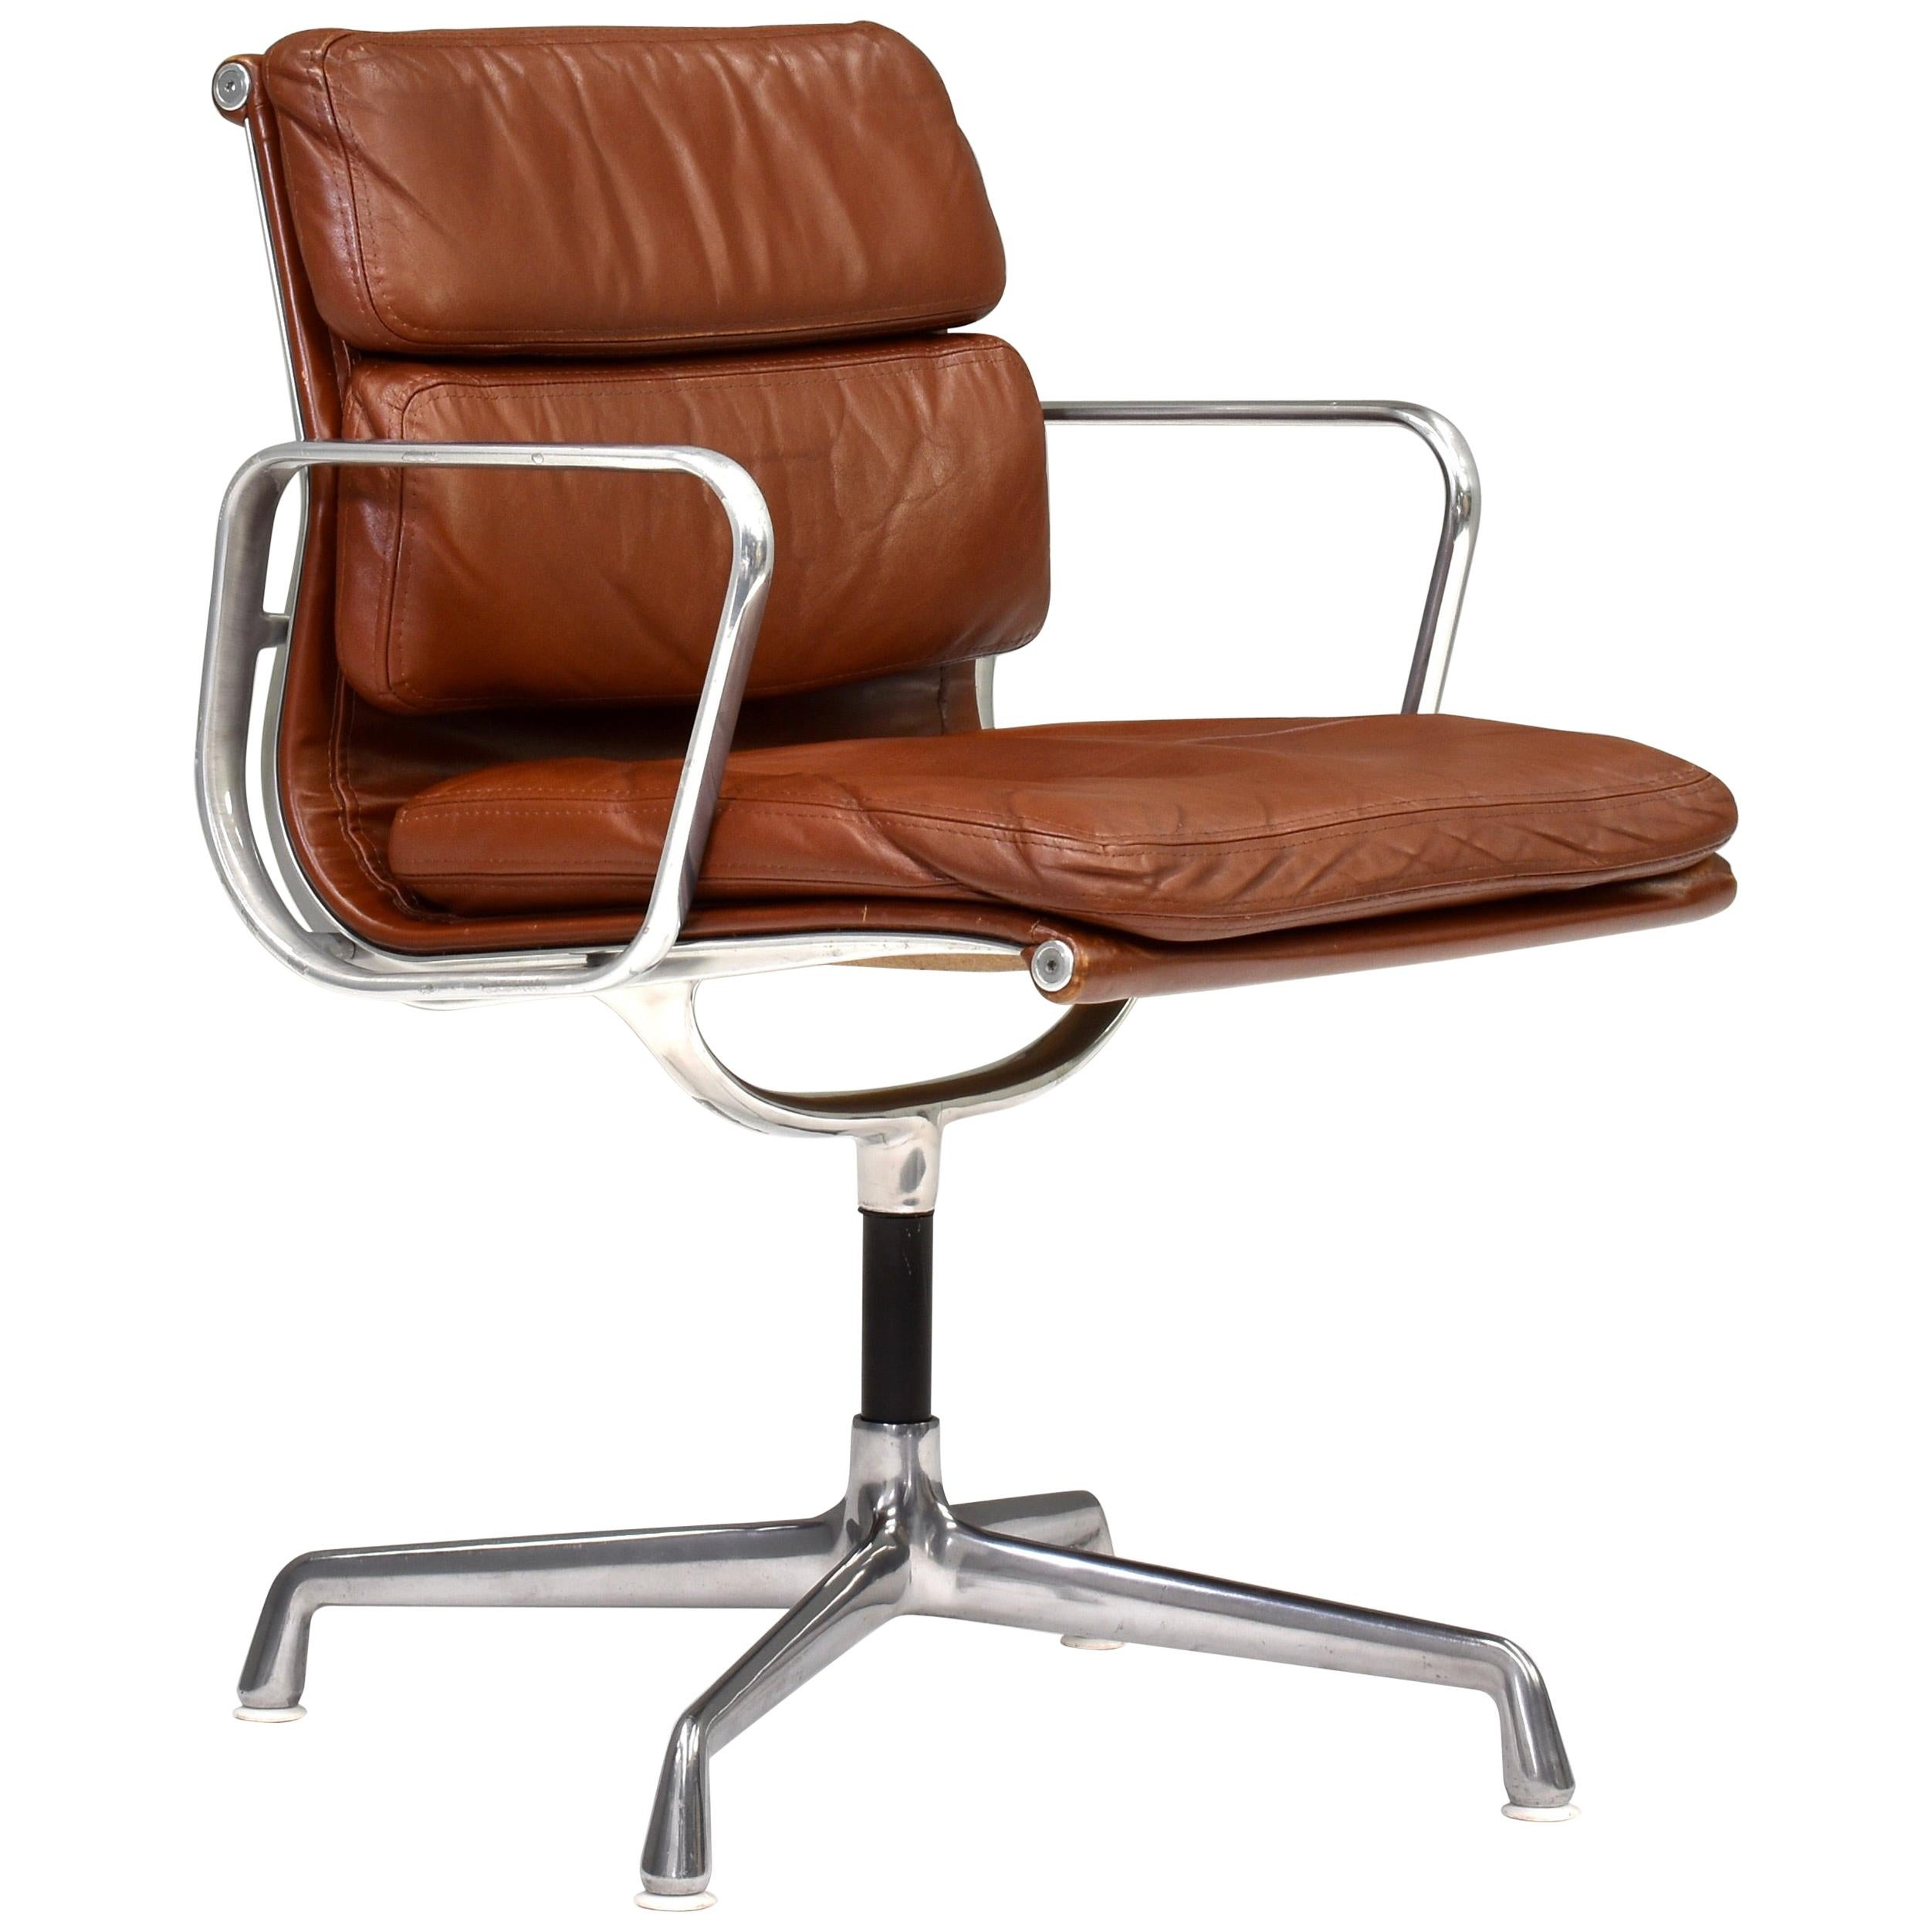 Early Eames EA208 Aluminum Softpad Chair in Tan Leather, circa 1970